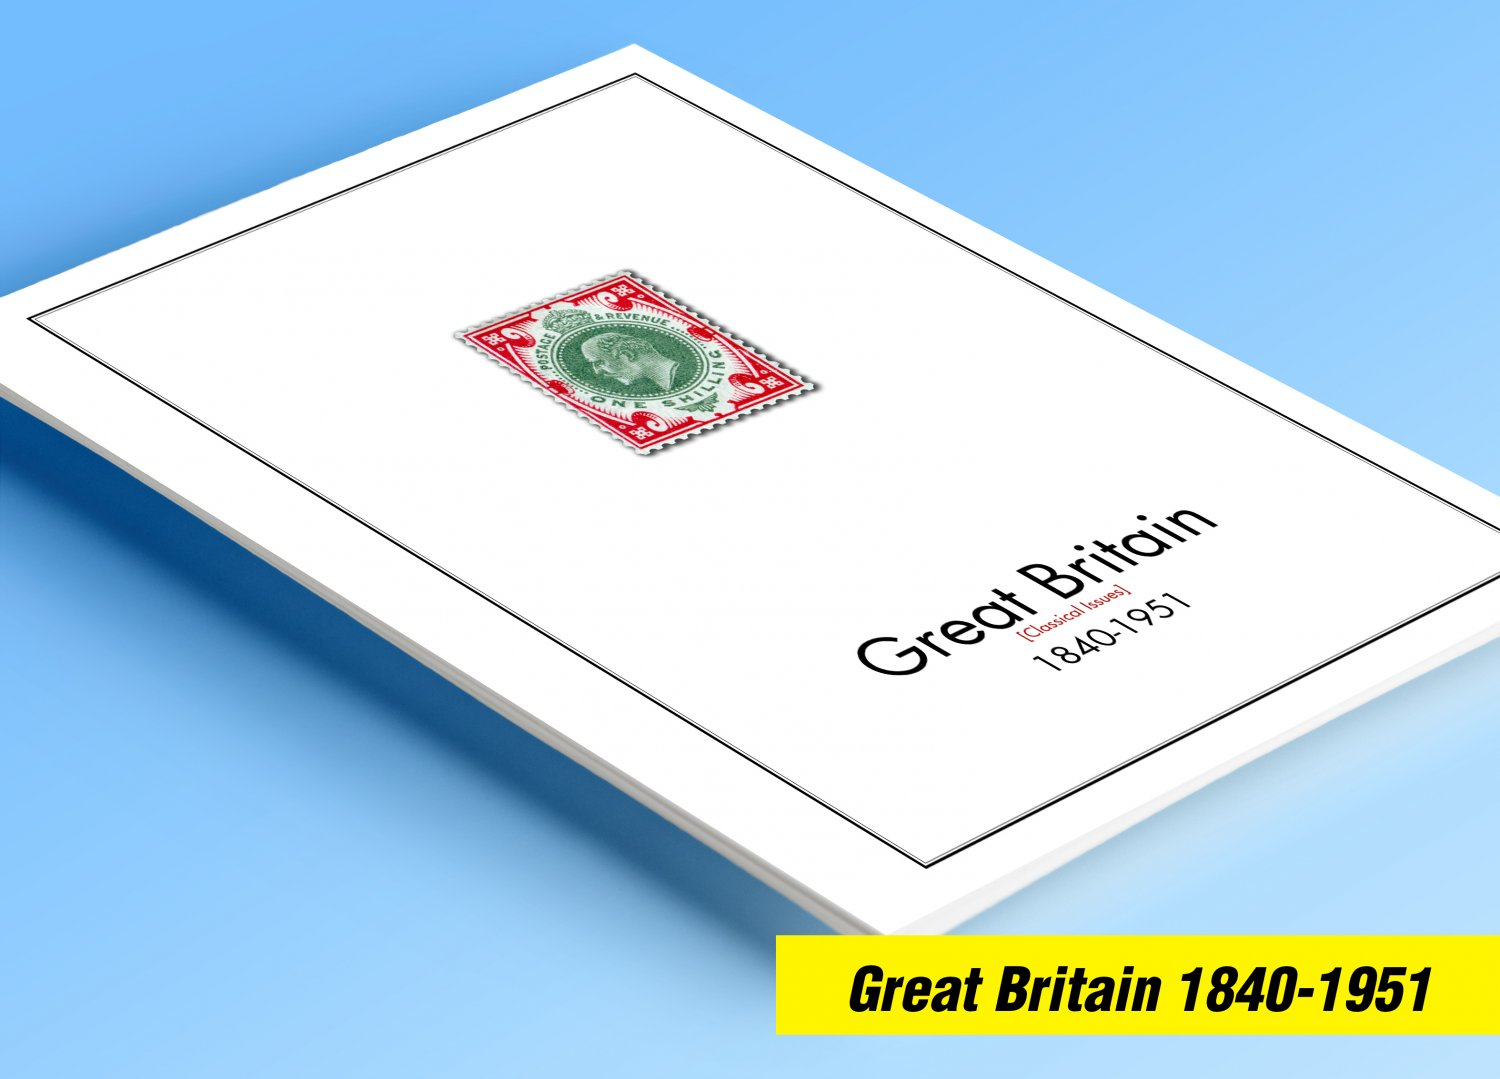 COLOR PRINTED GREAT BRITAIN [CLASS.] 1840-1951 STAMP ALBUM PAGES (28 illustrated pages)